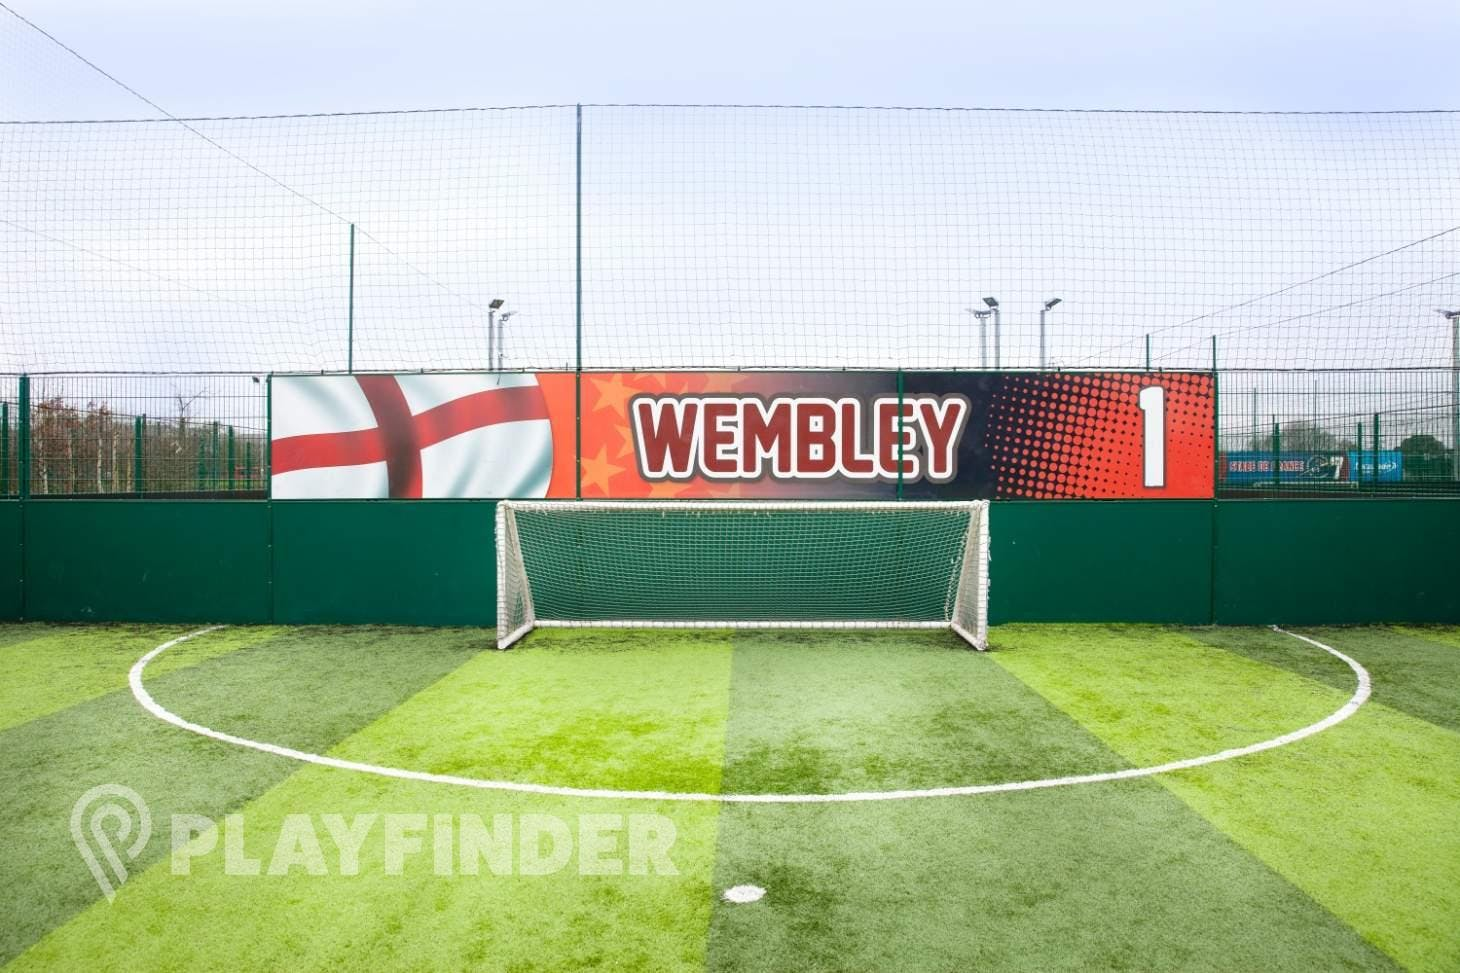 Goals Hayes 5 a side | 3G Astroturf football pitch